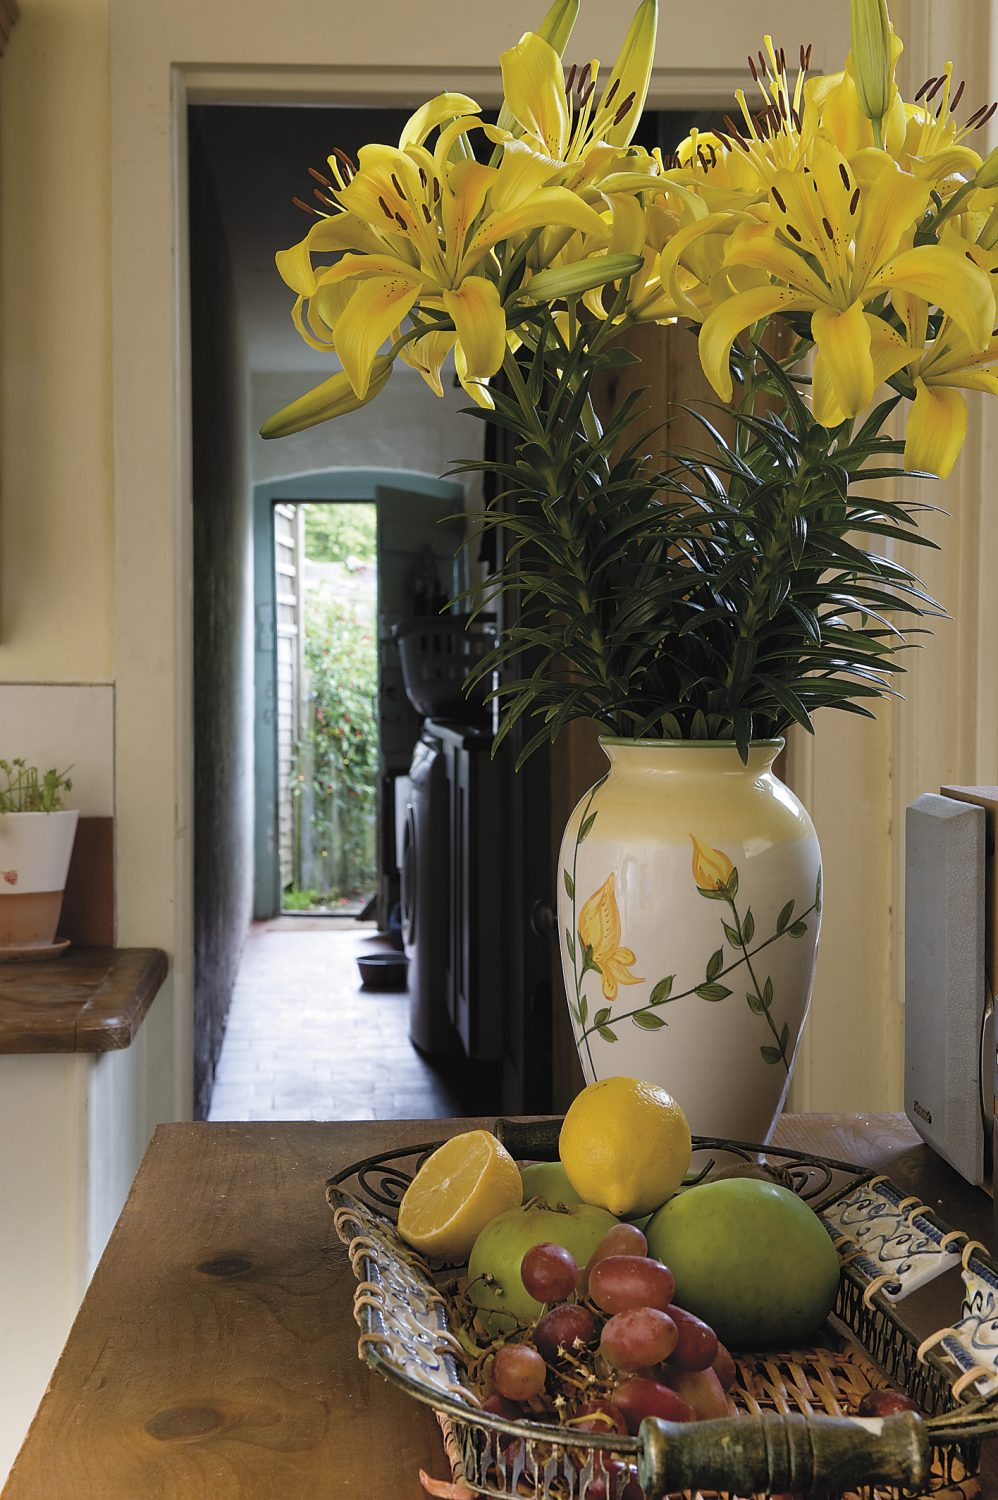 the brick paved passageway leads through the scullery to the garden